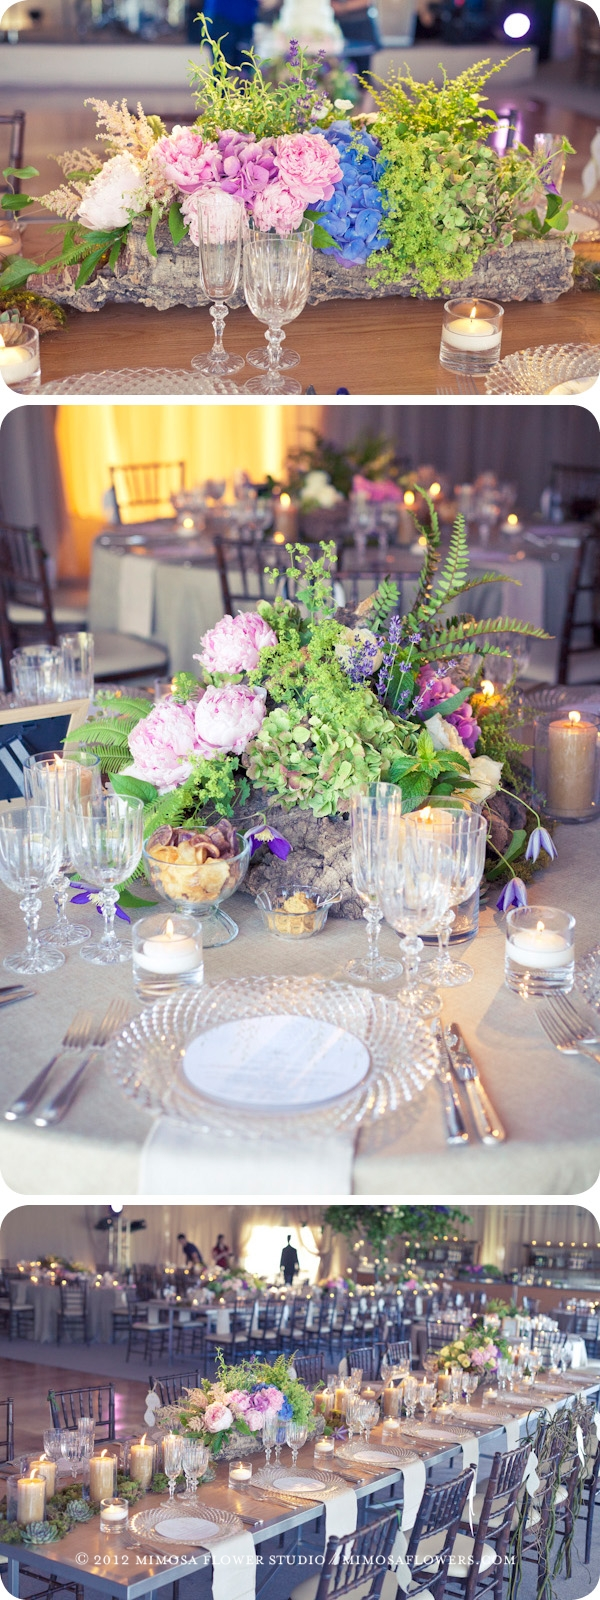 Blue Mountain private wedding - floral decor